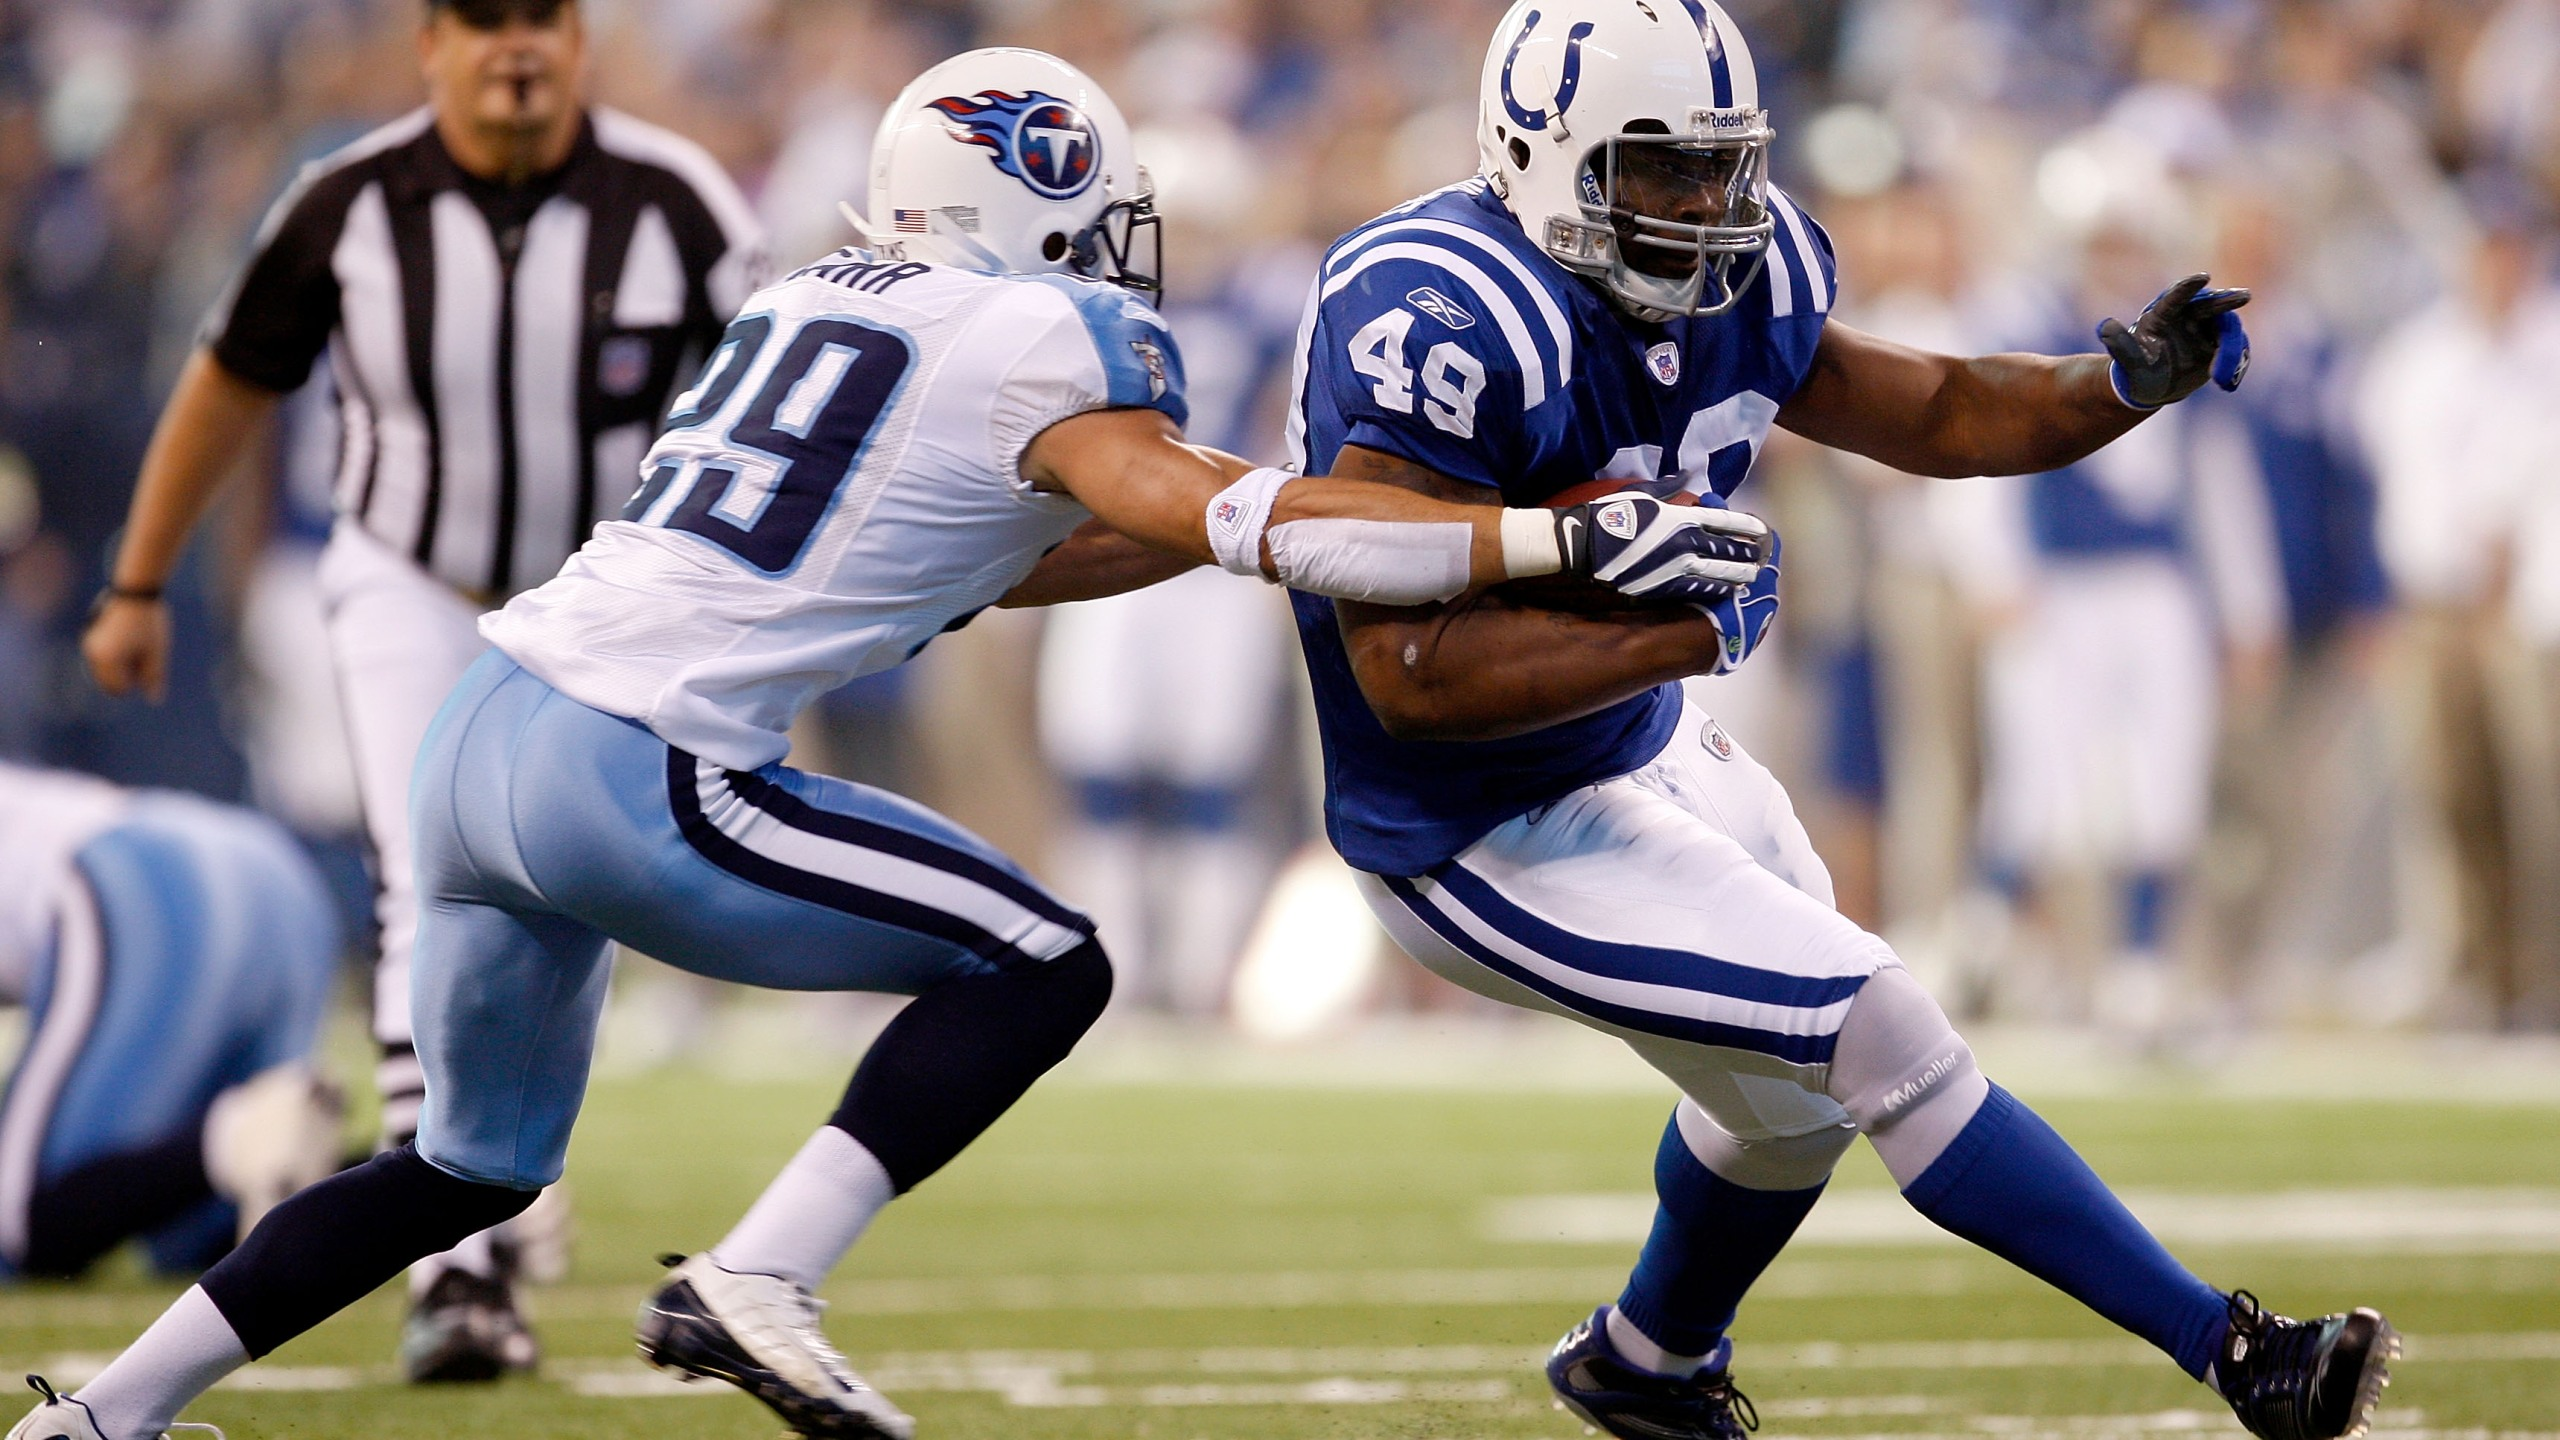 Najeh Davenport, No. 49, of the Indianapolis Colts carries the ball as Chris Carr, No. 29, of the Tennessee Titans defends during the game at Lucas Oil Stadium Dec. 28, 2008 in Indianapolis, Indiana. (Jamie Squire/Getty Images)